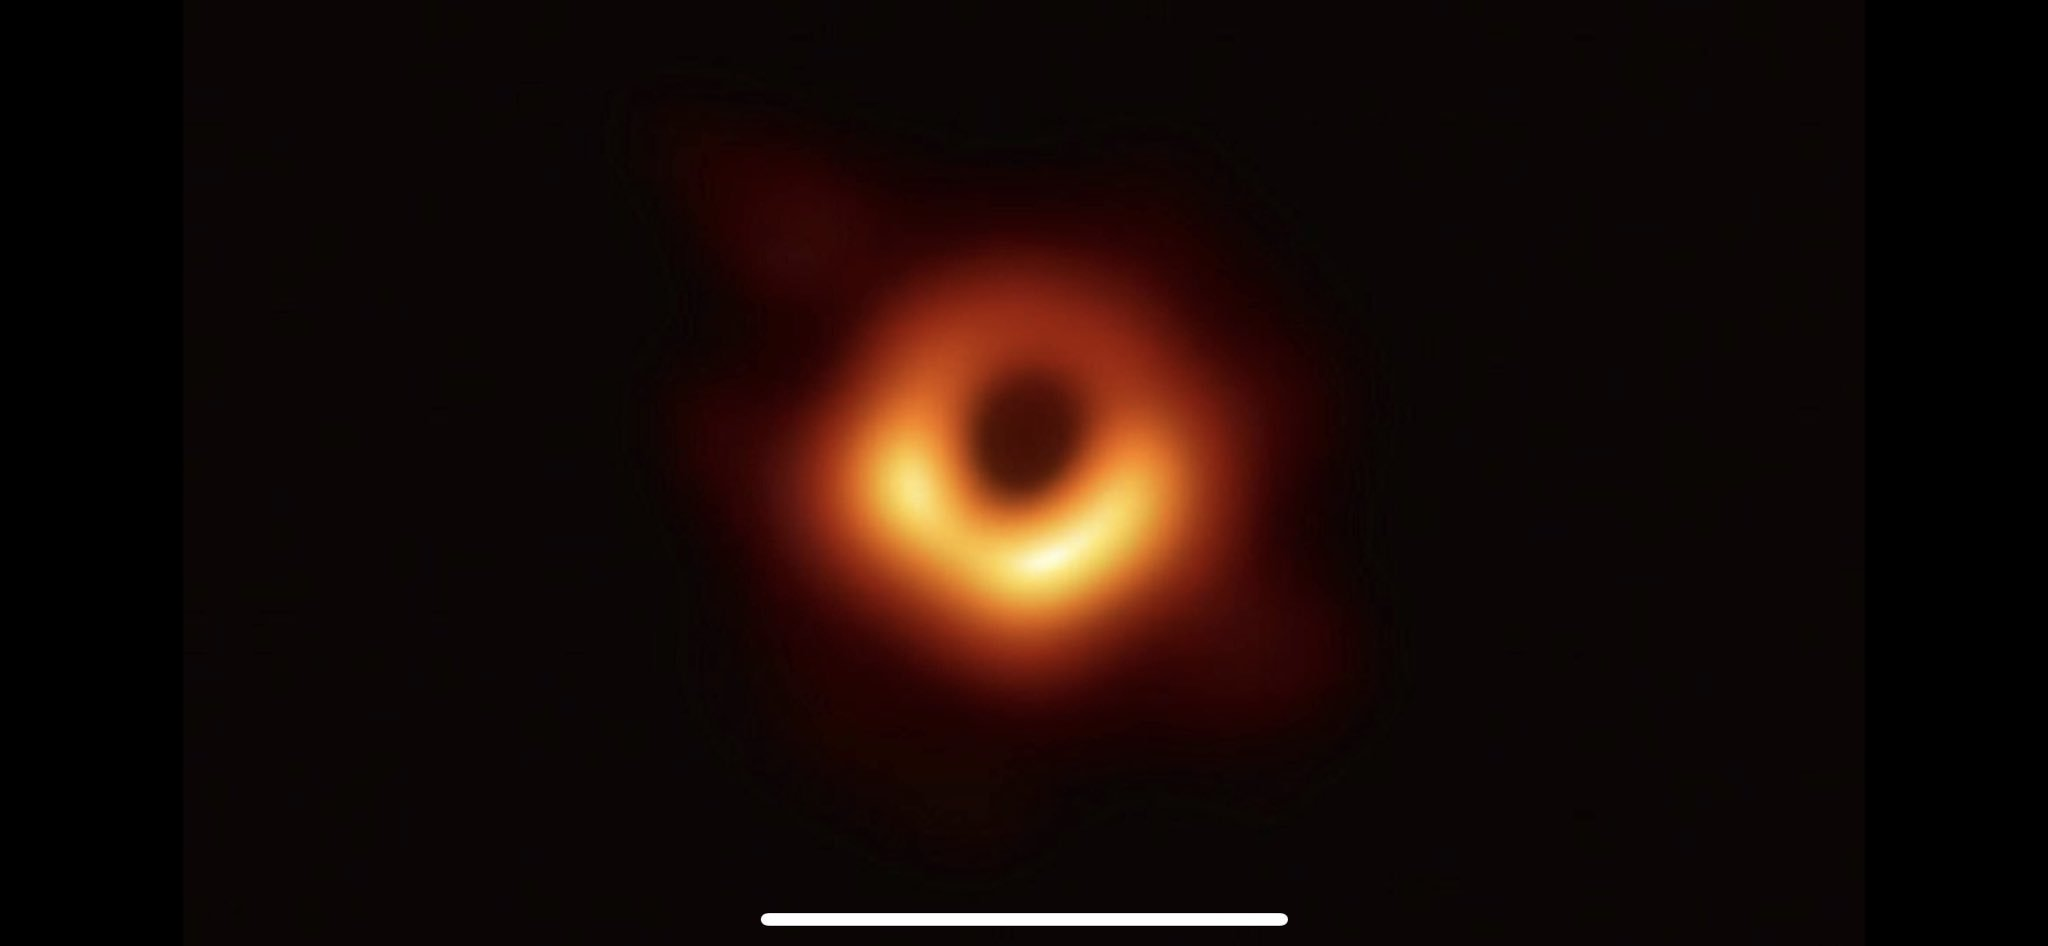 The first ever image of an actual black hole makes me tear up 🕳 am I the only one?  Truly special times we live.  Interface reference is a joke to make myself laugh. https://t.co/vq8CKibDlP